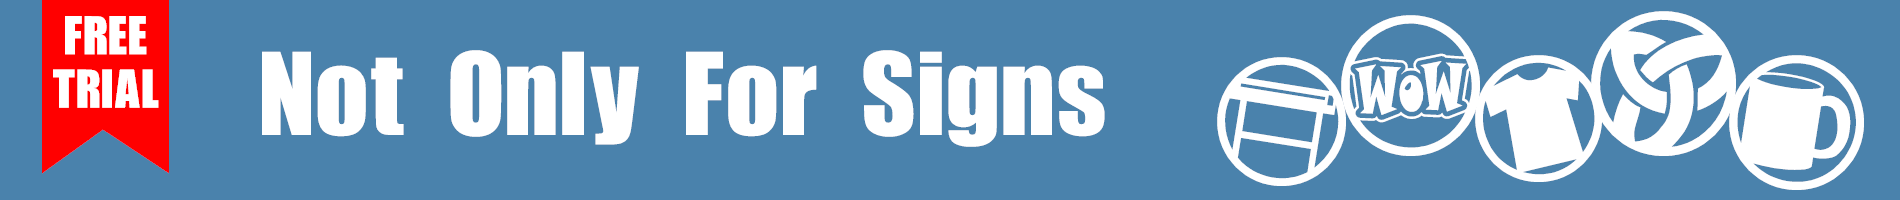 SignGo Home Banner